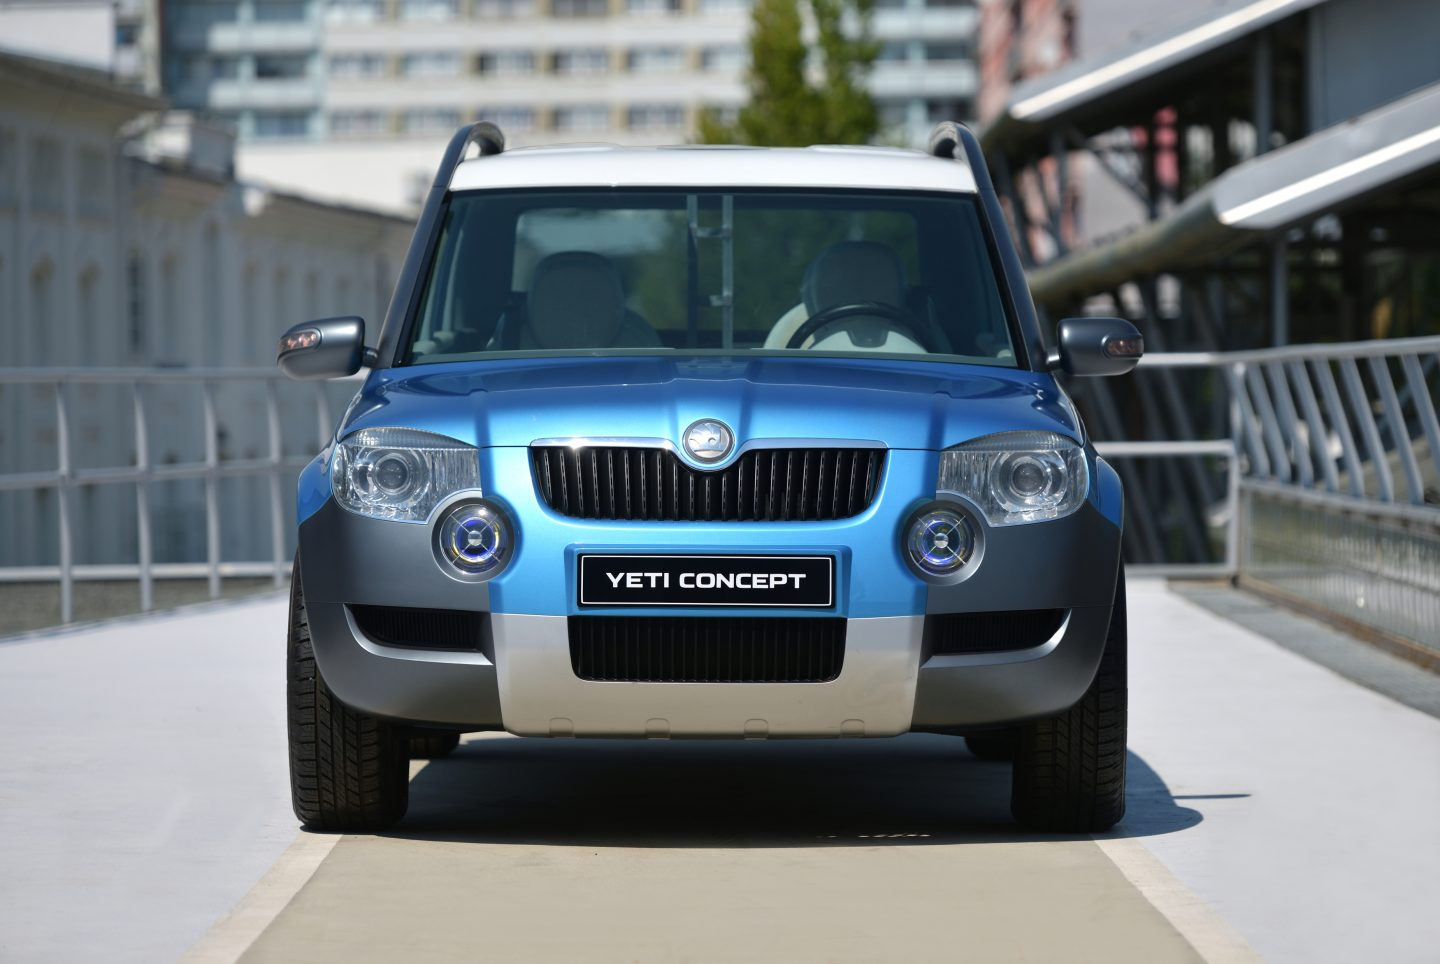 yeti-skoda-exterior-front-photo-shoot